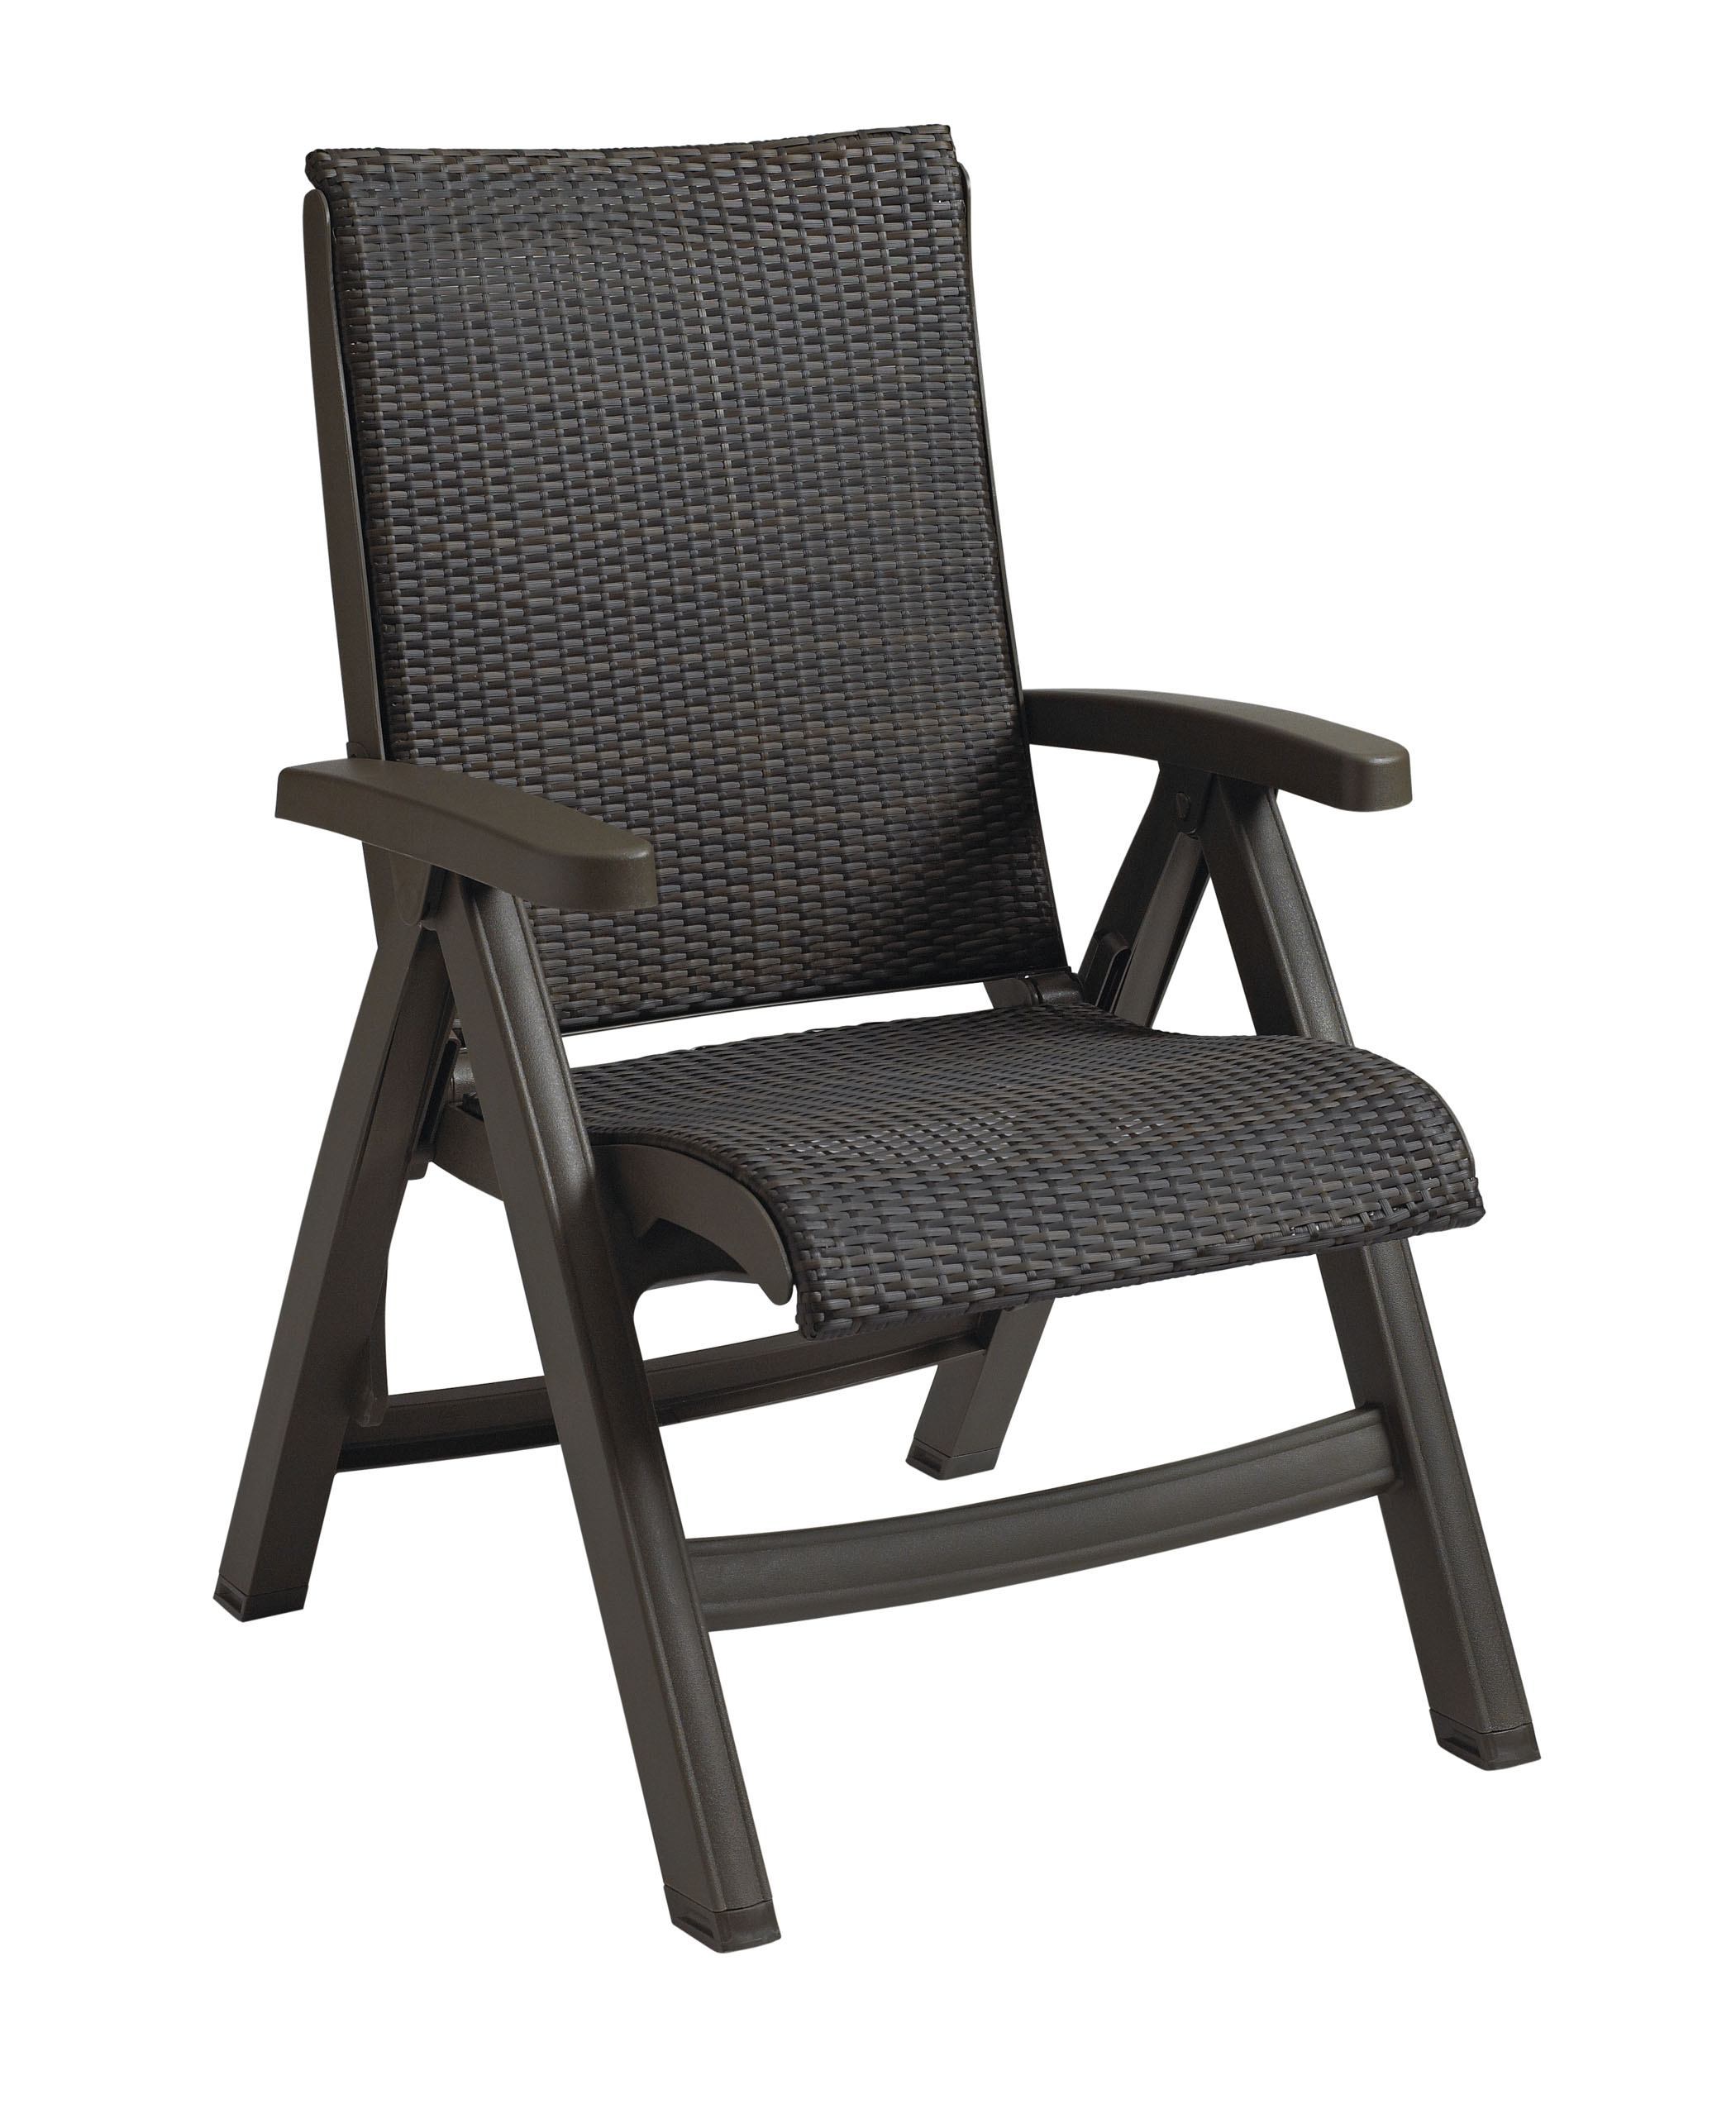 Cute Folding Chairs Brief Overview About The Folding Patio Chairs Darbylanefurniture